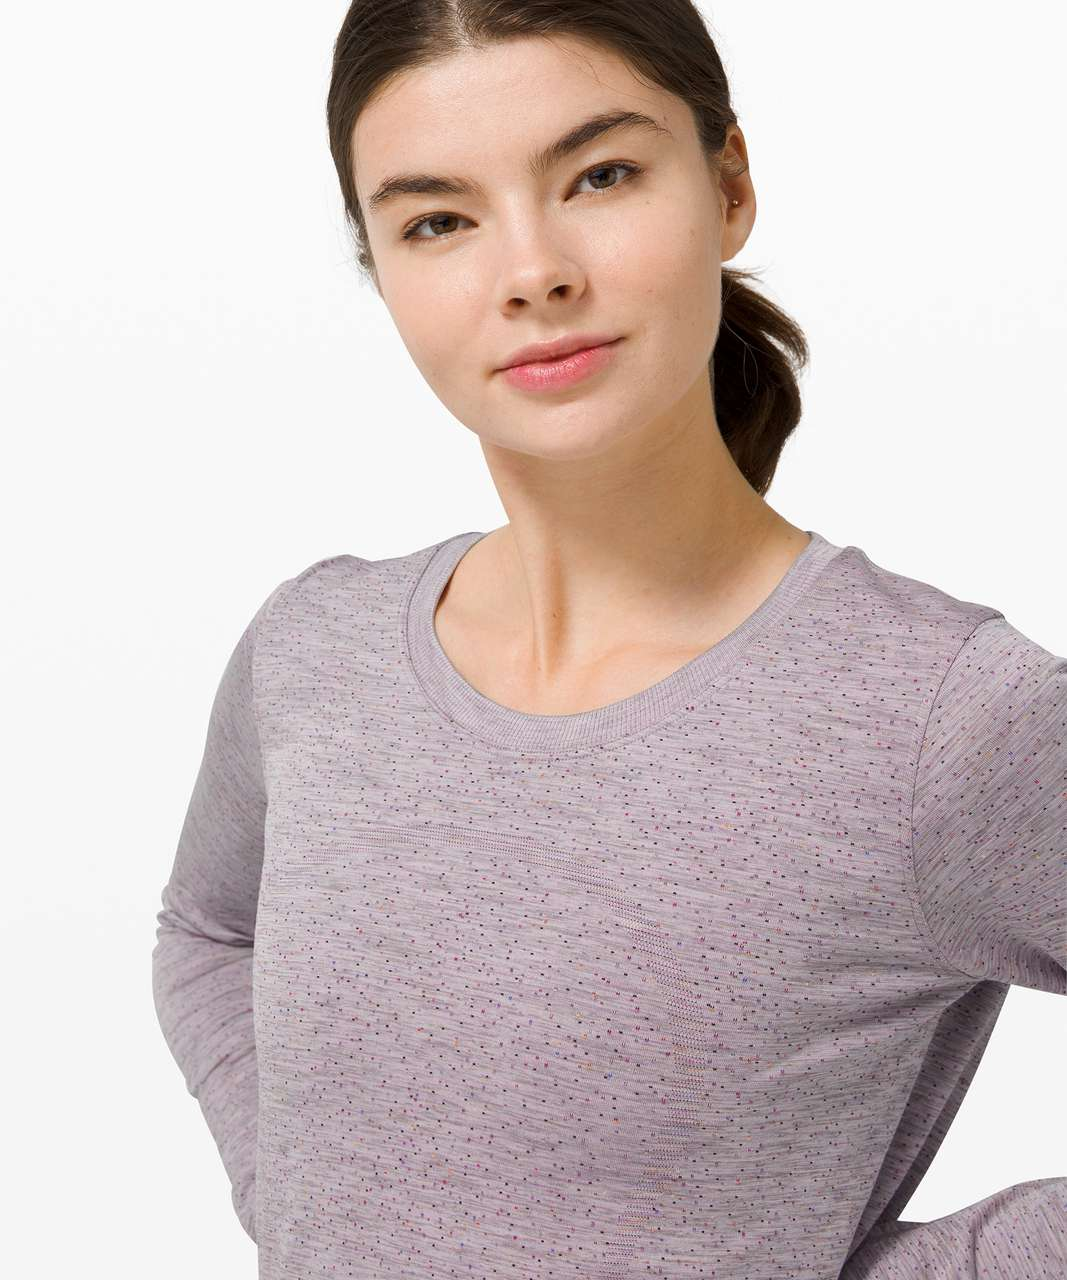 Lululemon Swiftly Relaxed Long Sleeve - Dapple Dot Slate / Fuchsia Multi